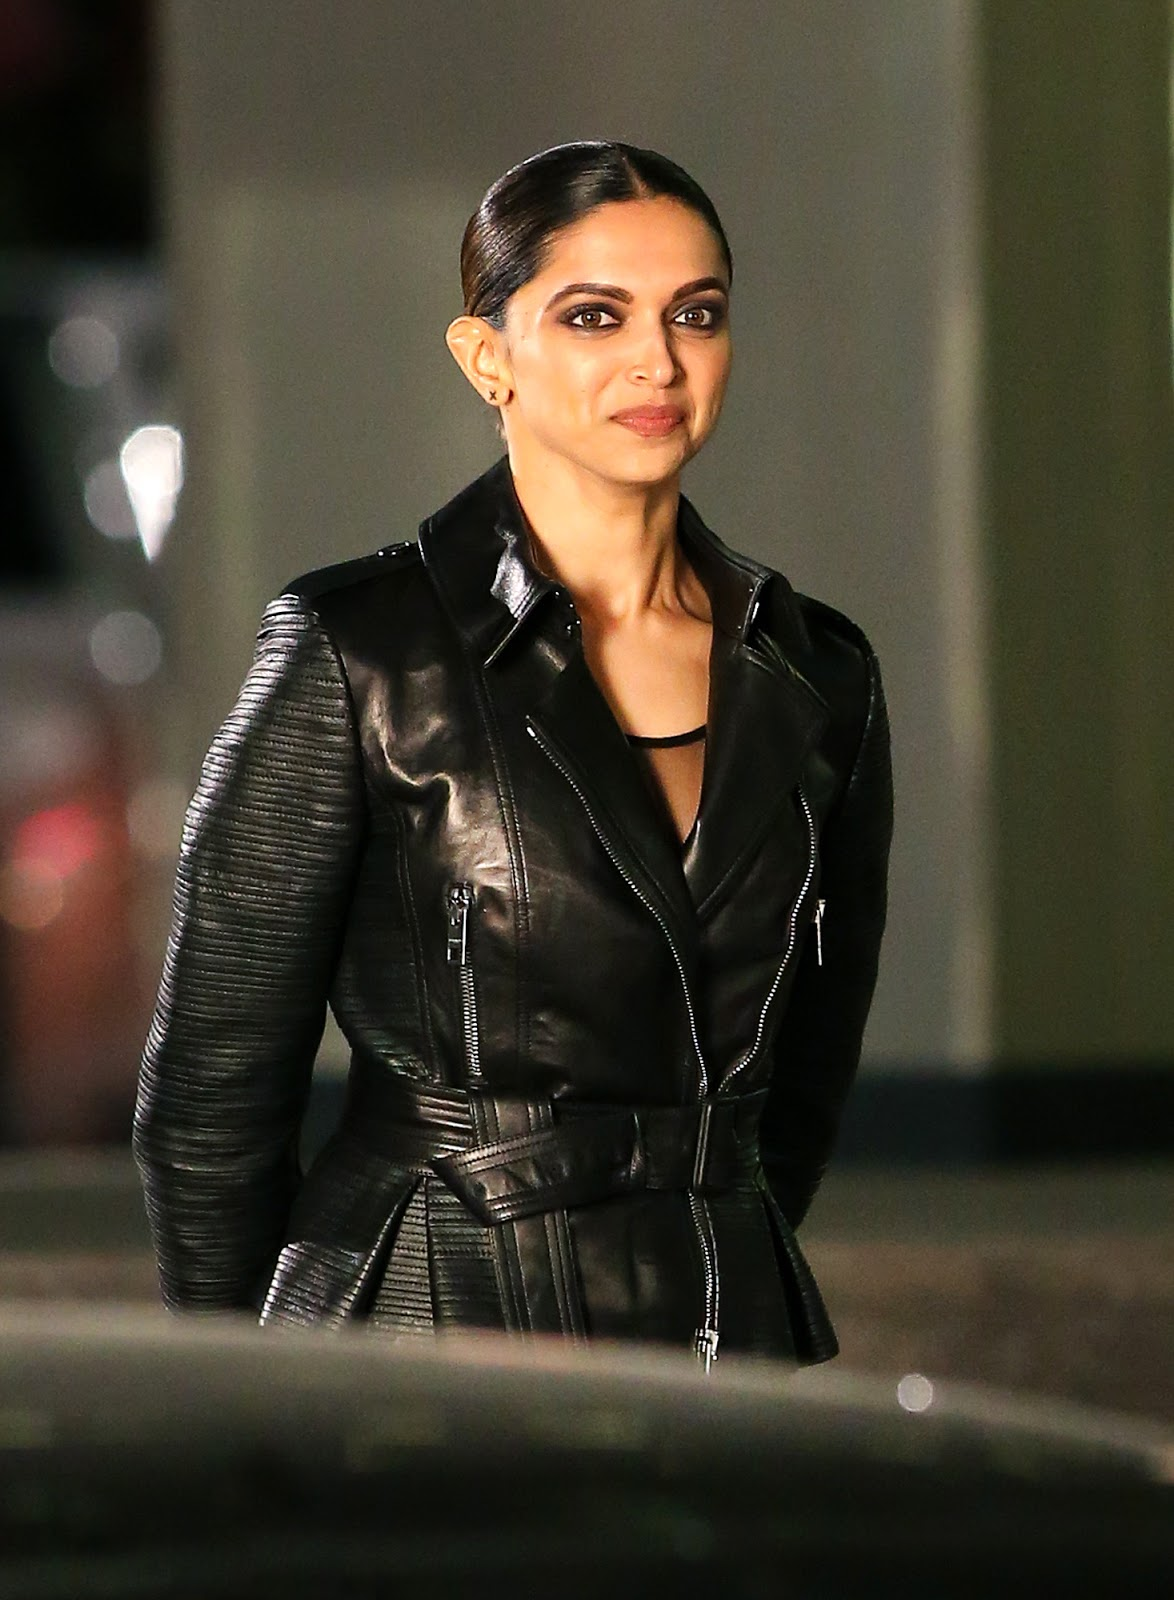 High Quality Bollywood Celebrity Pictures Deepika -6542